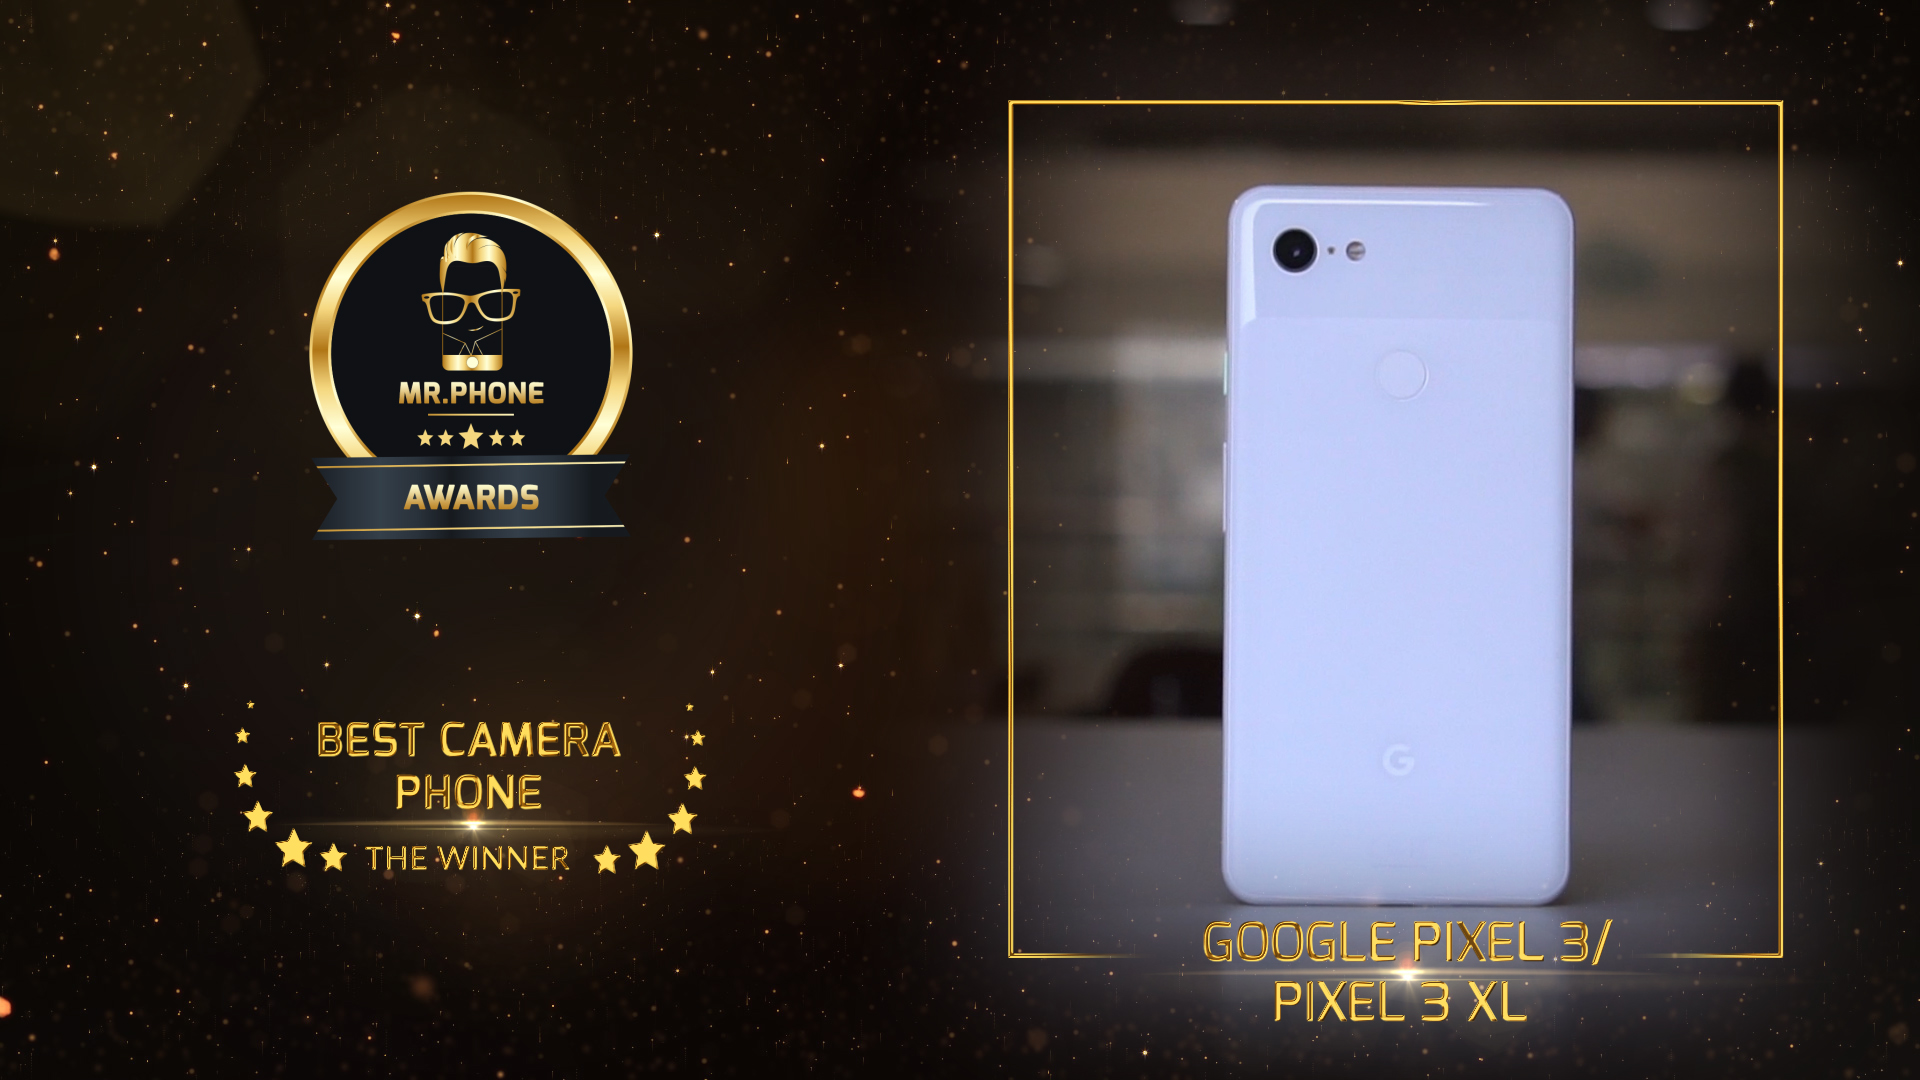 Mr. Phone Best Camera Phone 2018 - Google Pixel 3 XL